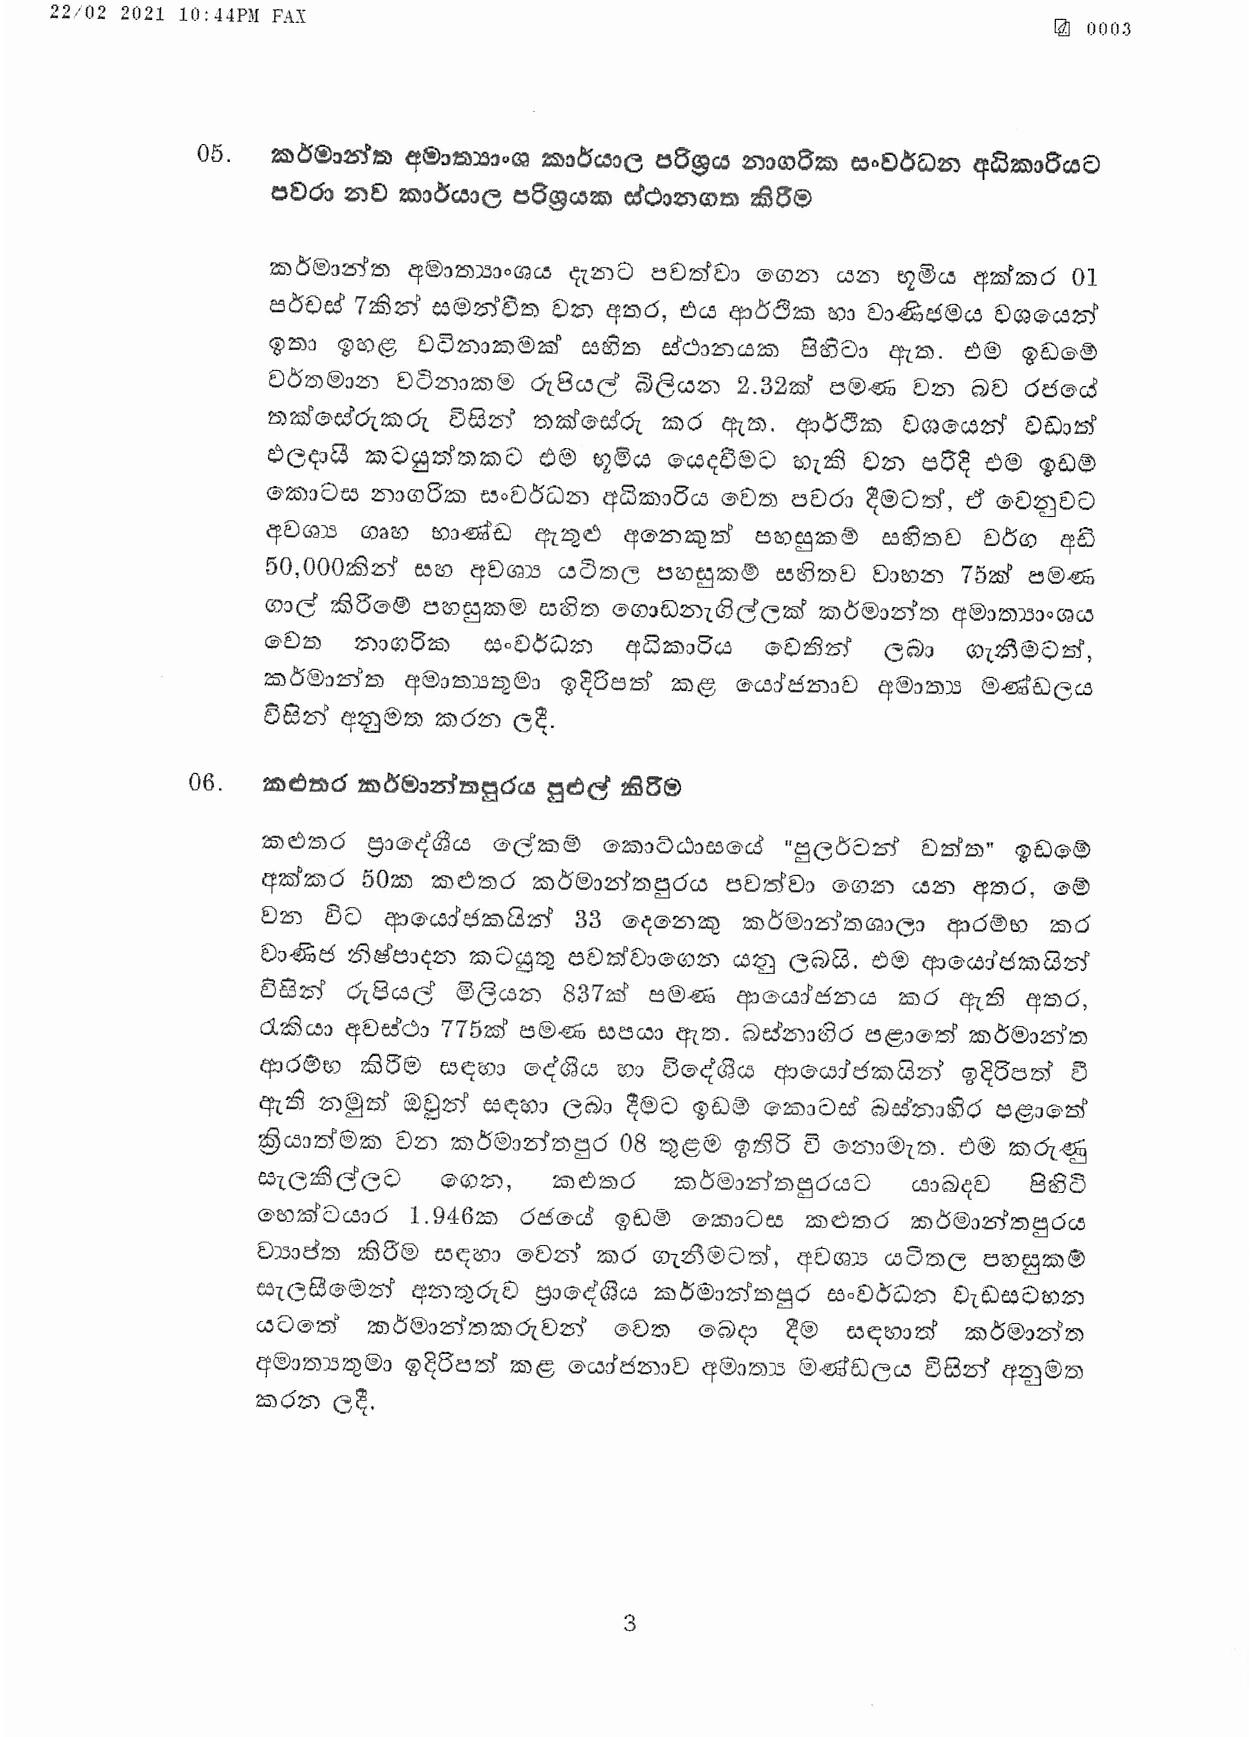 Cabinet Decision on 22.02.2021 page 003